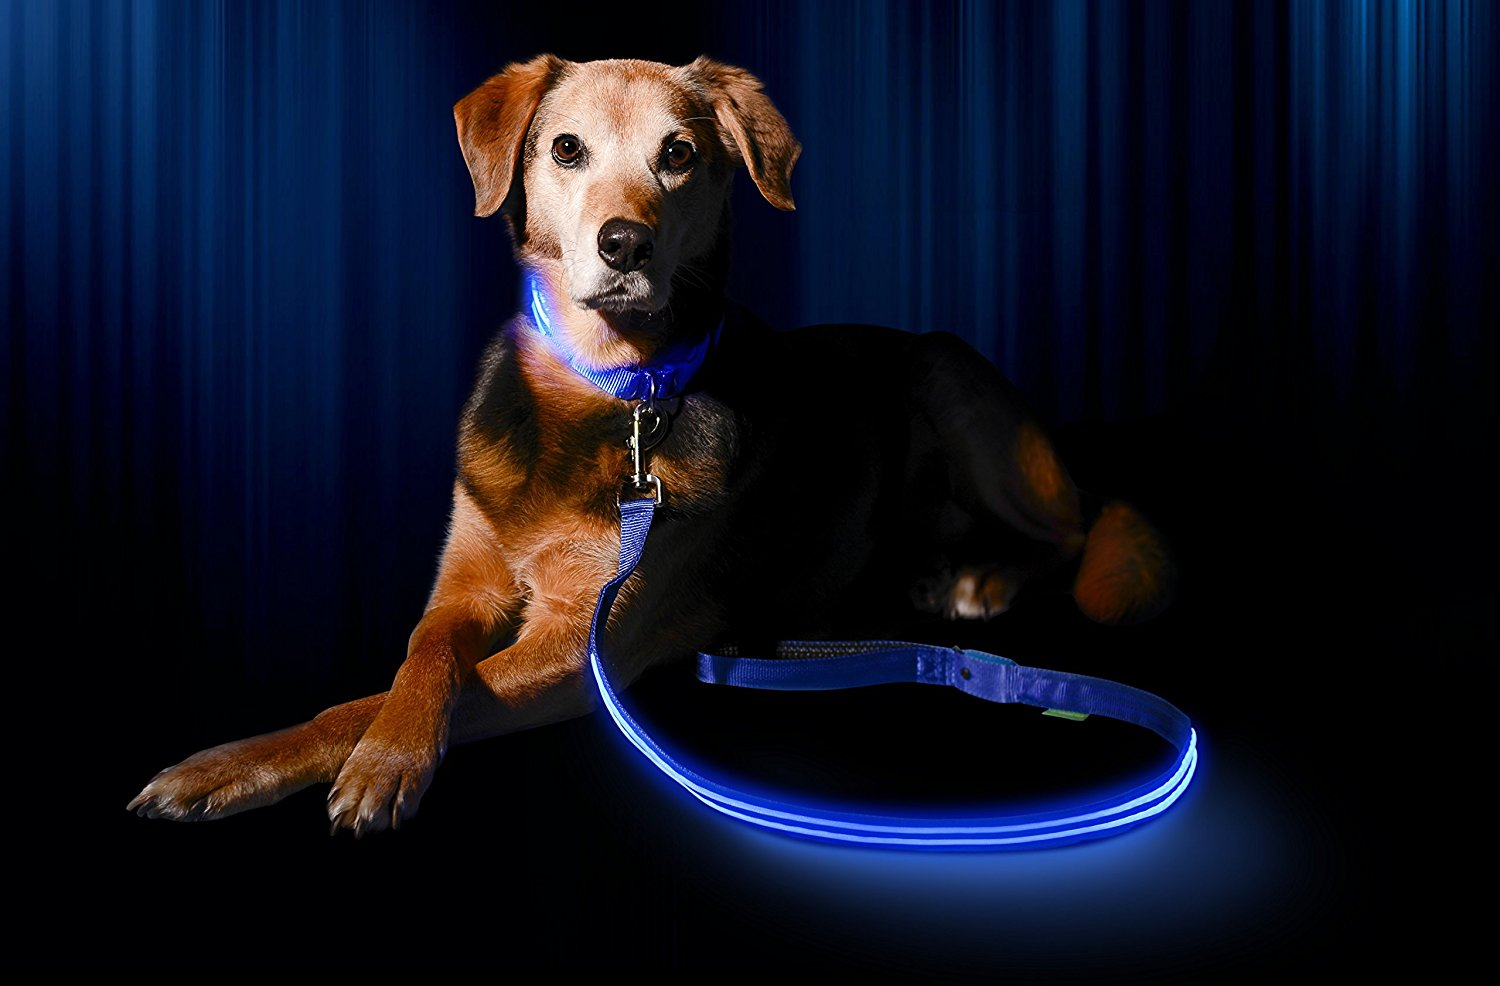 Coolest LED Dog Leashes You Can Buy For Your Dog